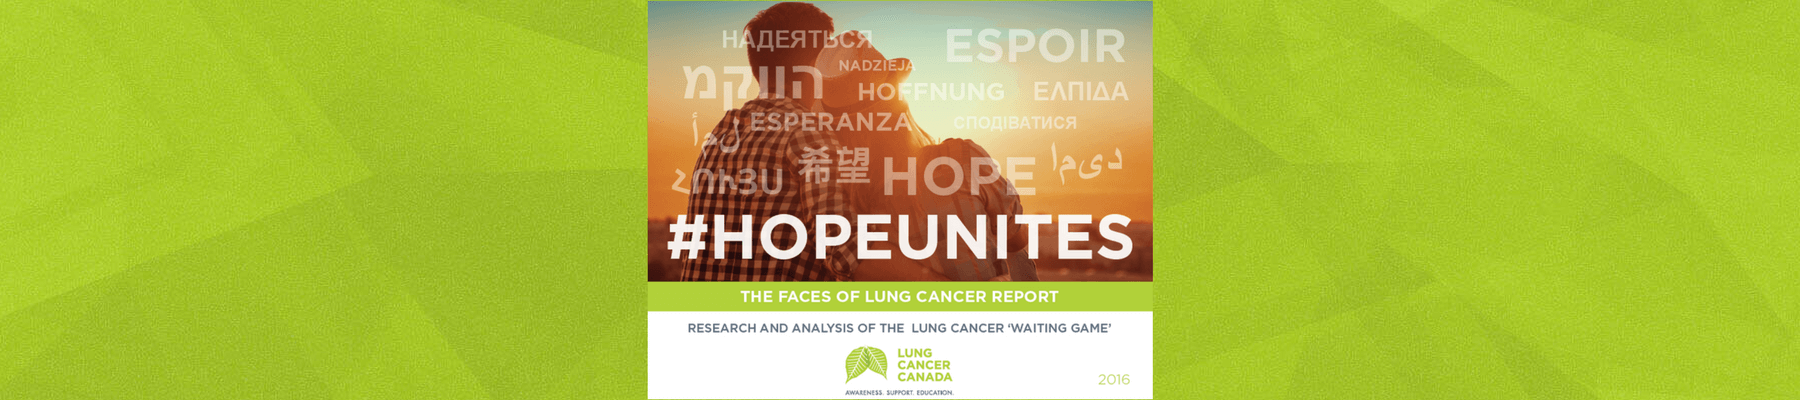 2016 Faces of Lung Cancer Report